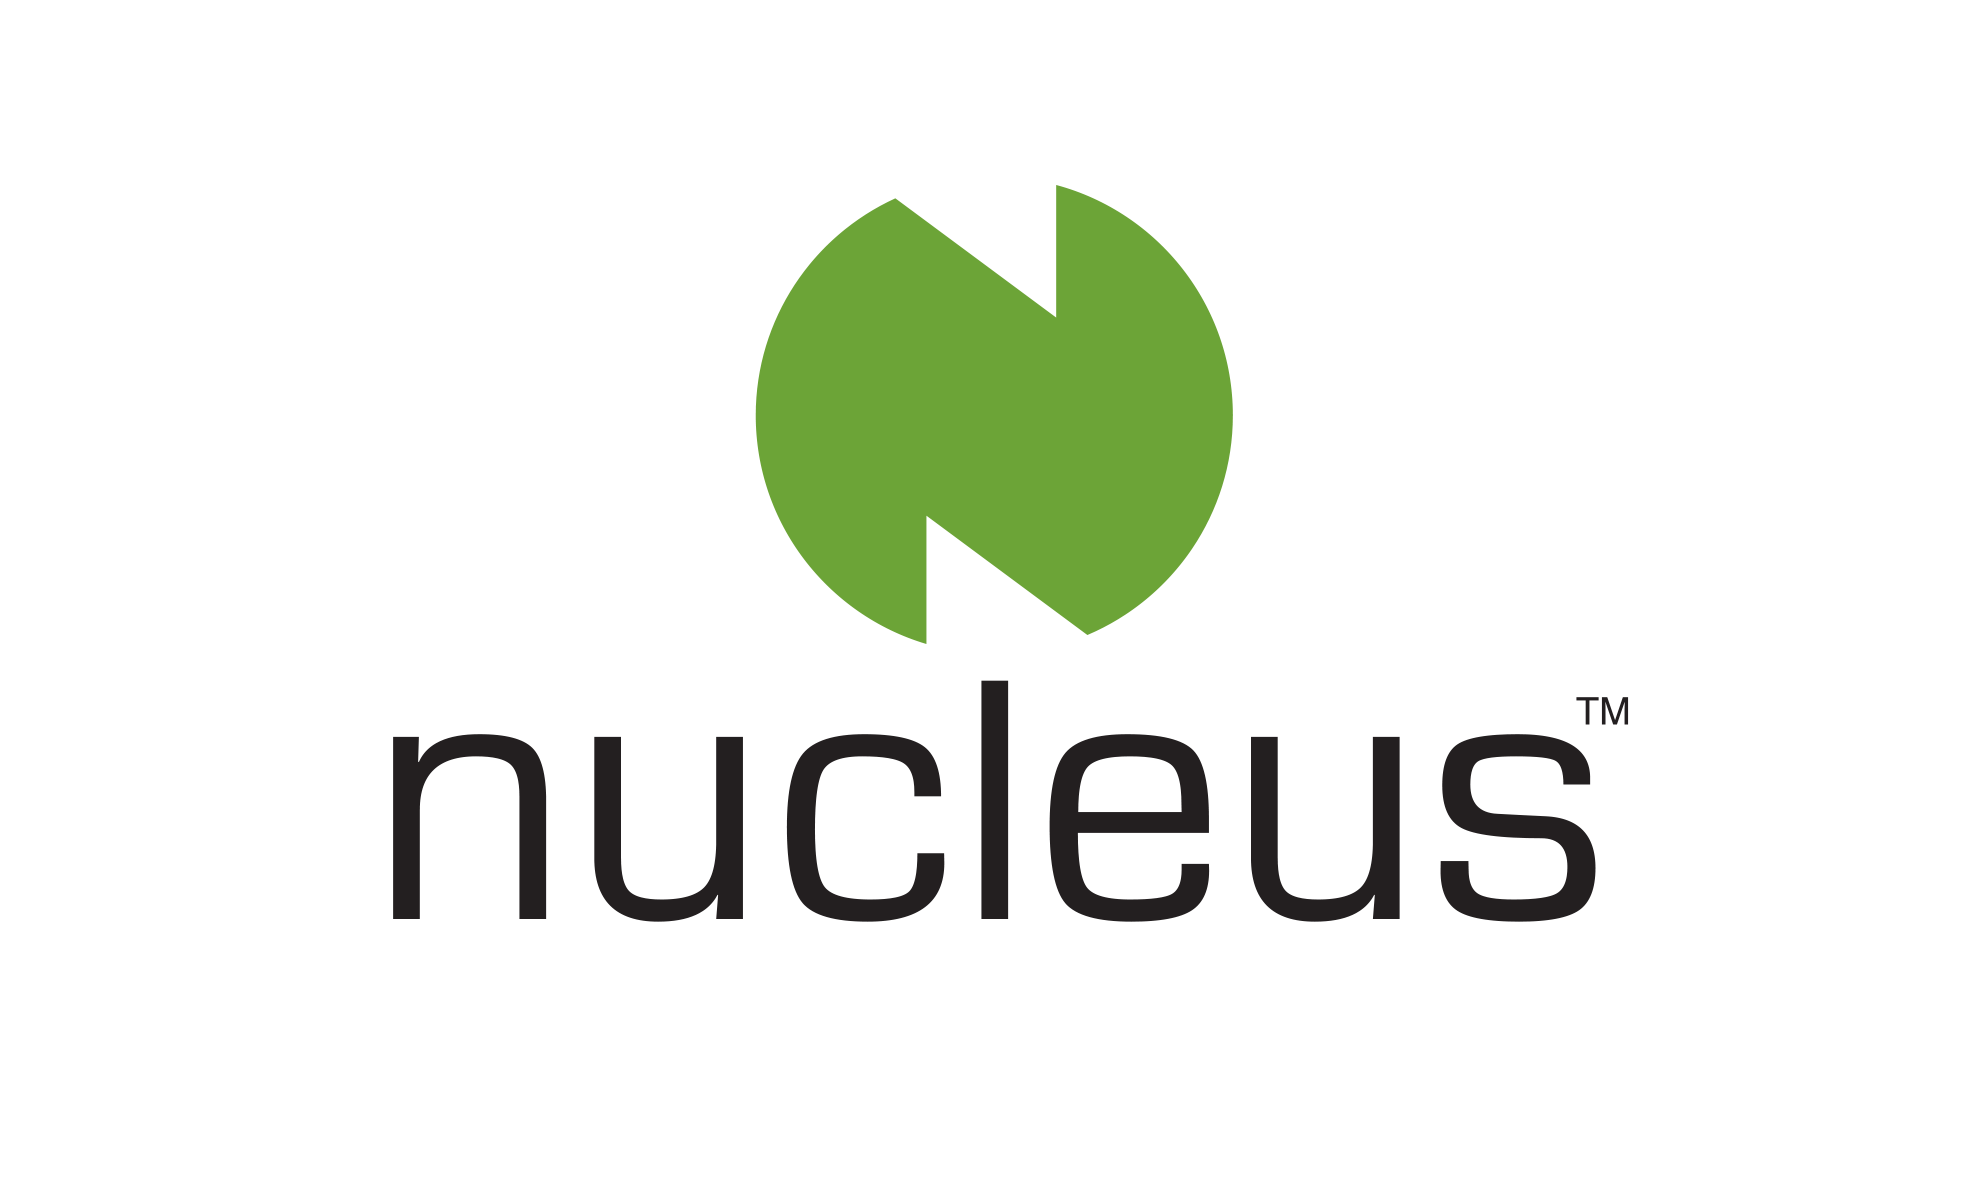 Nucleus logo 2016-PMS7737-BLK-Stacked